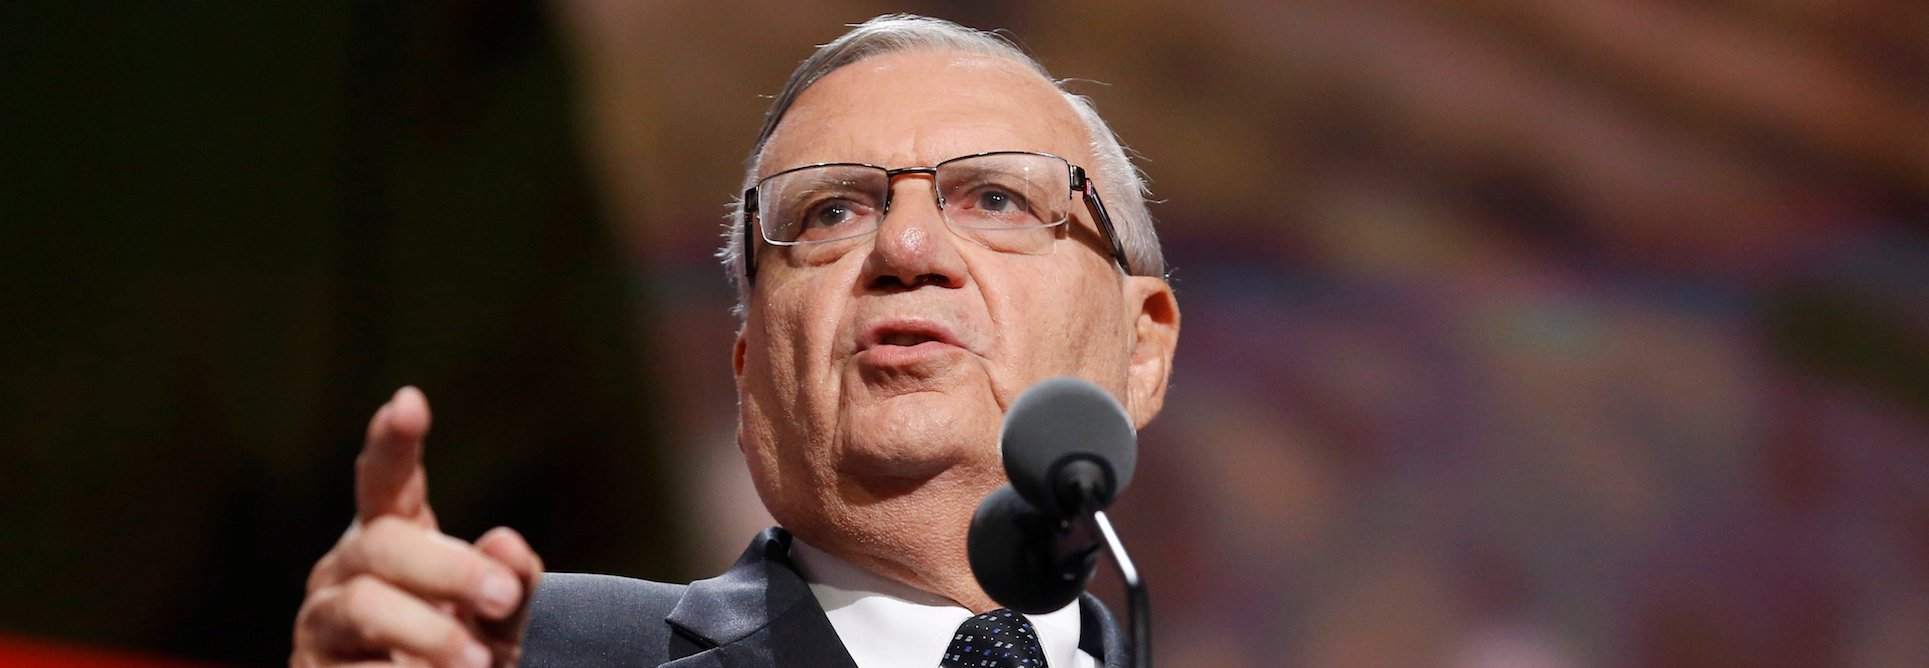 Arpaio is back